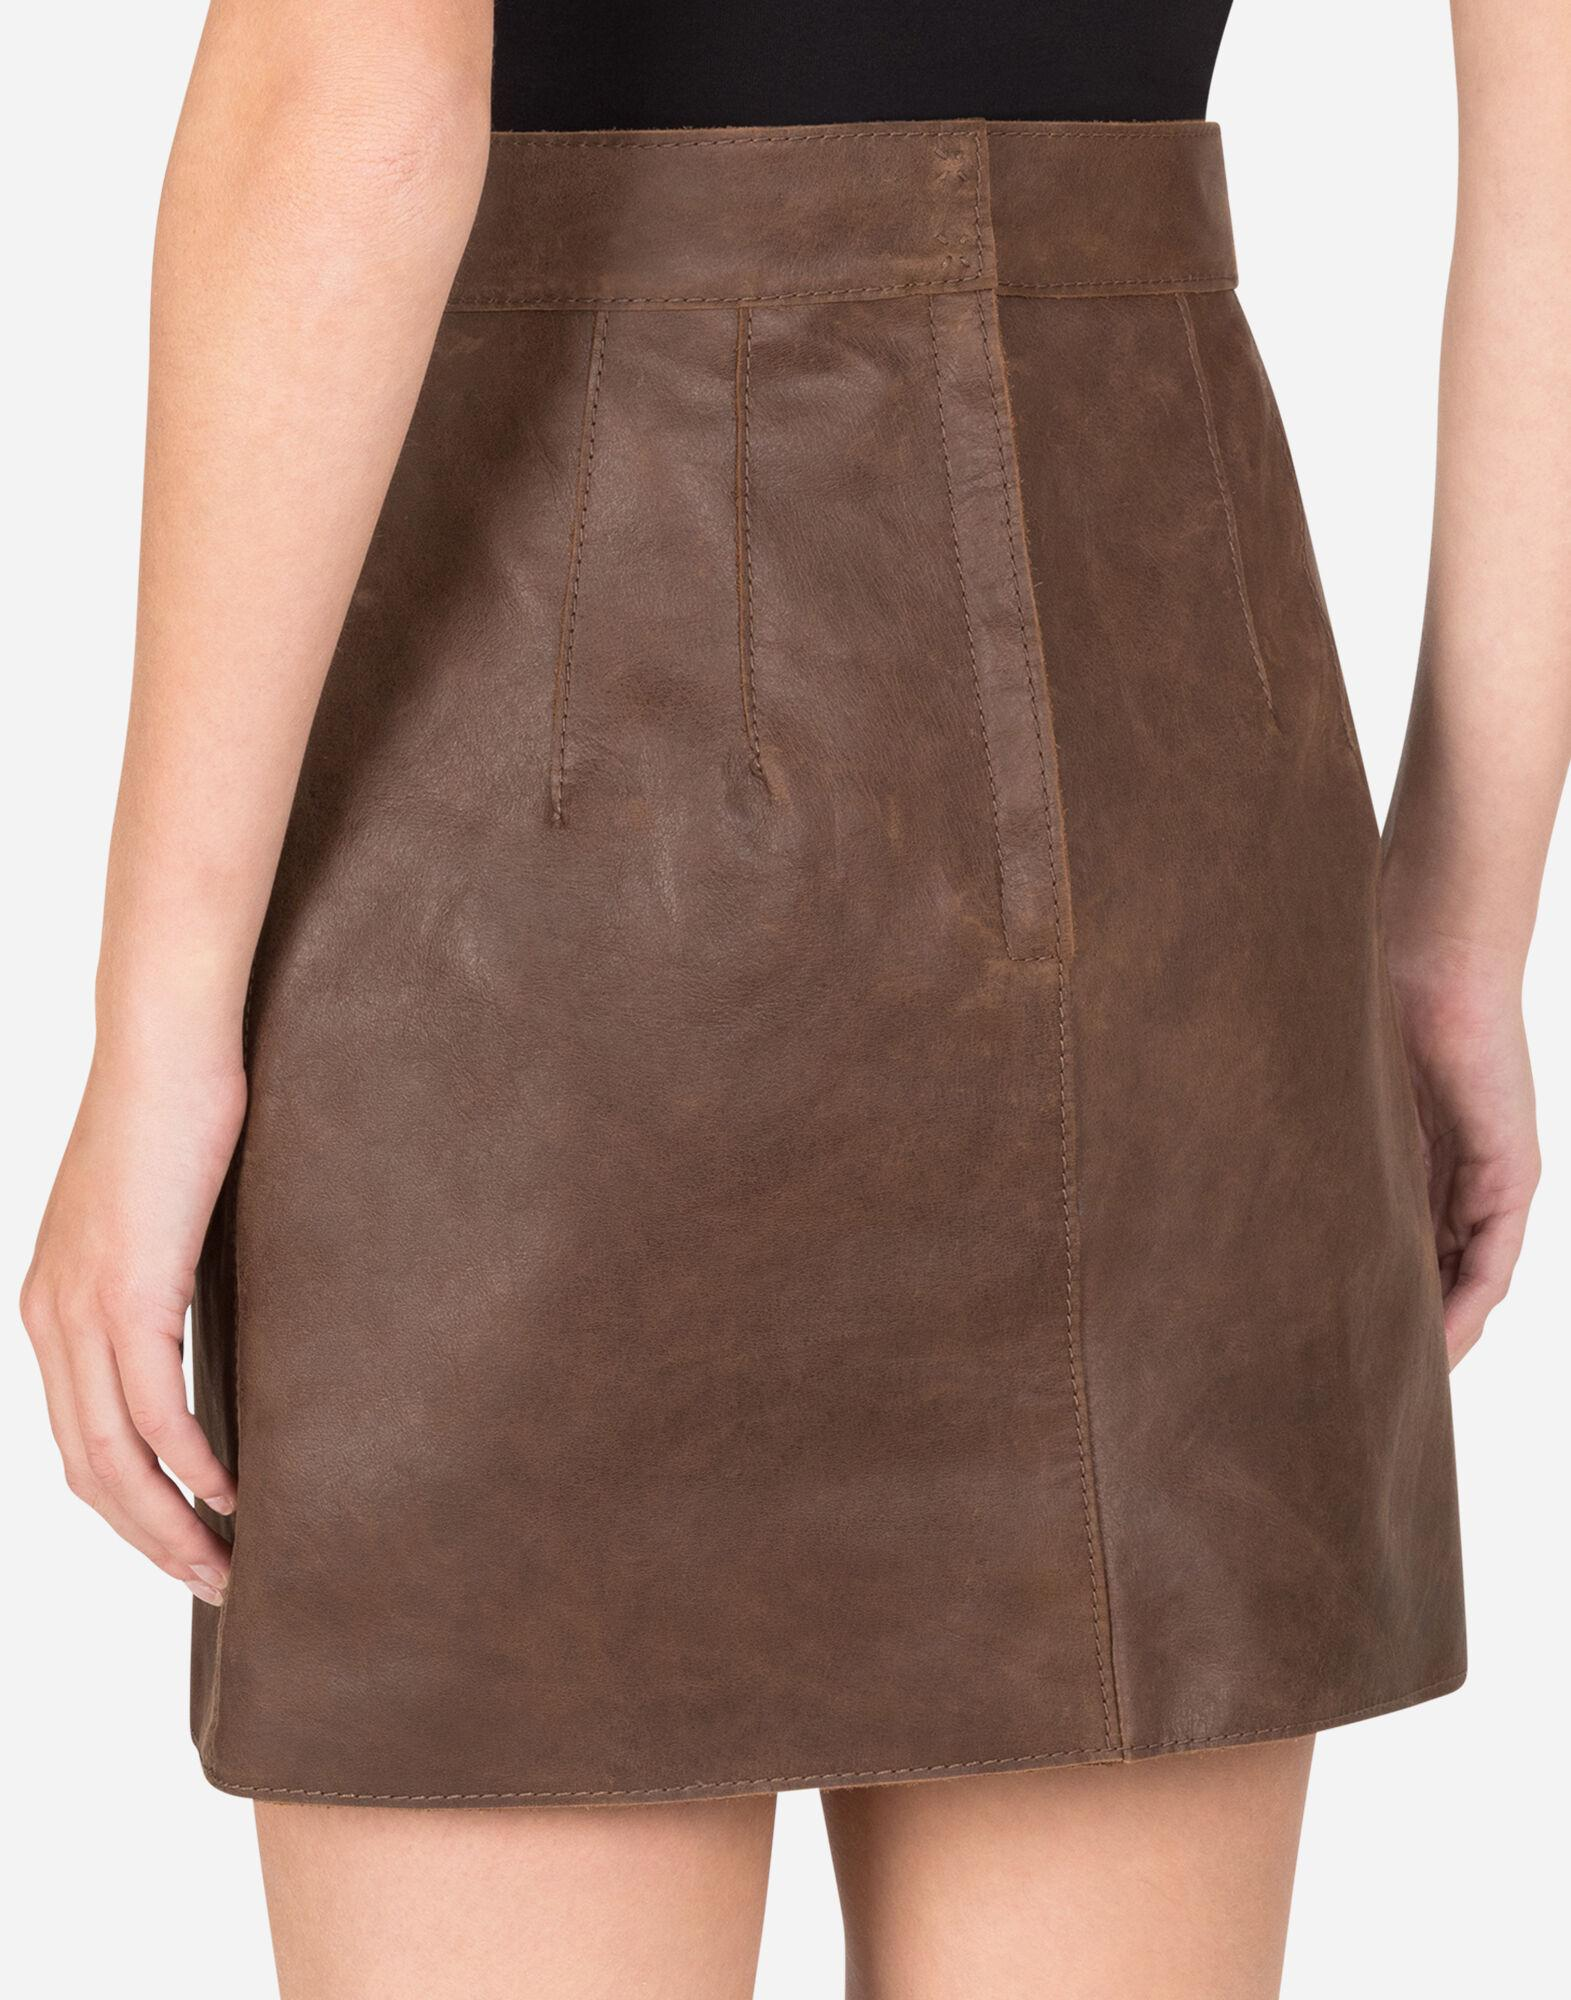 A-line miniskirt in hammered nappa leather 5